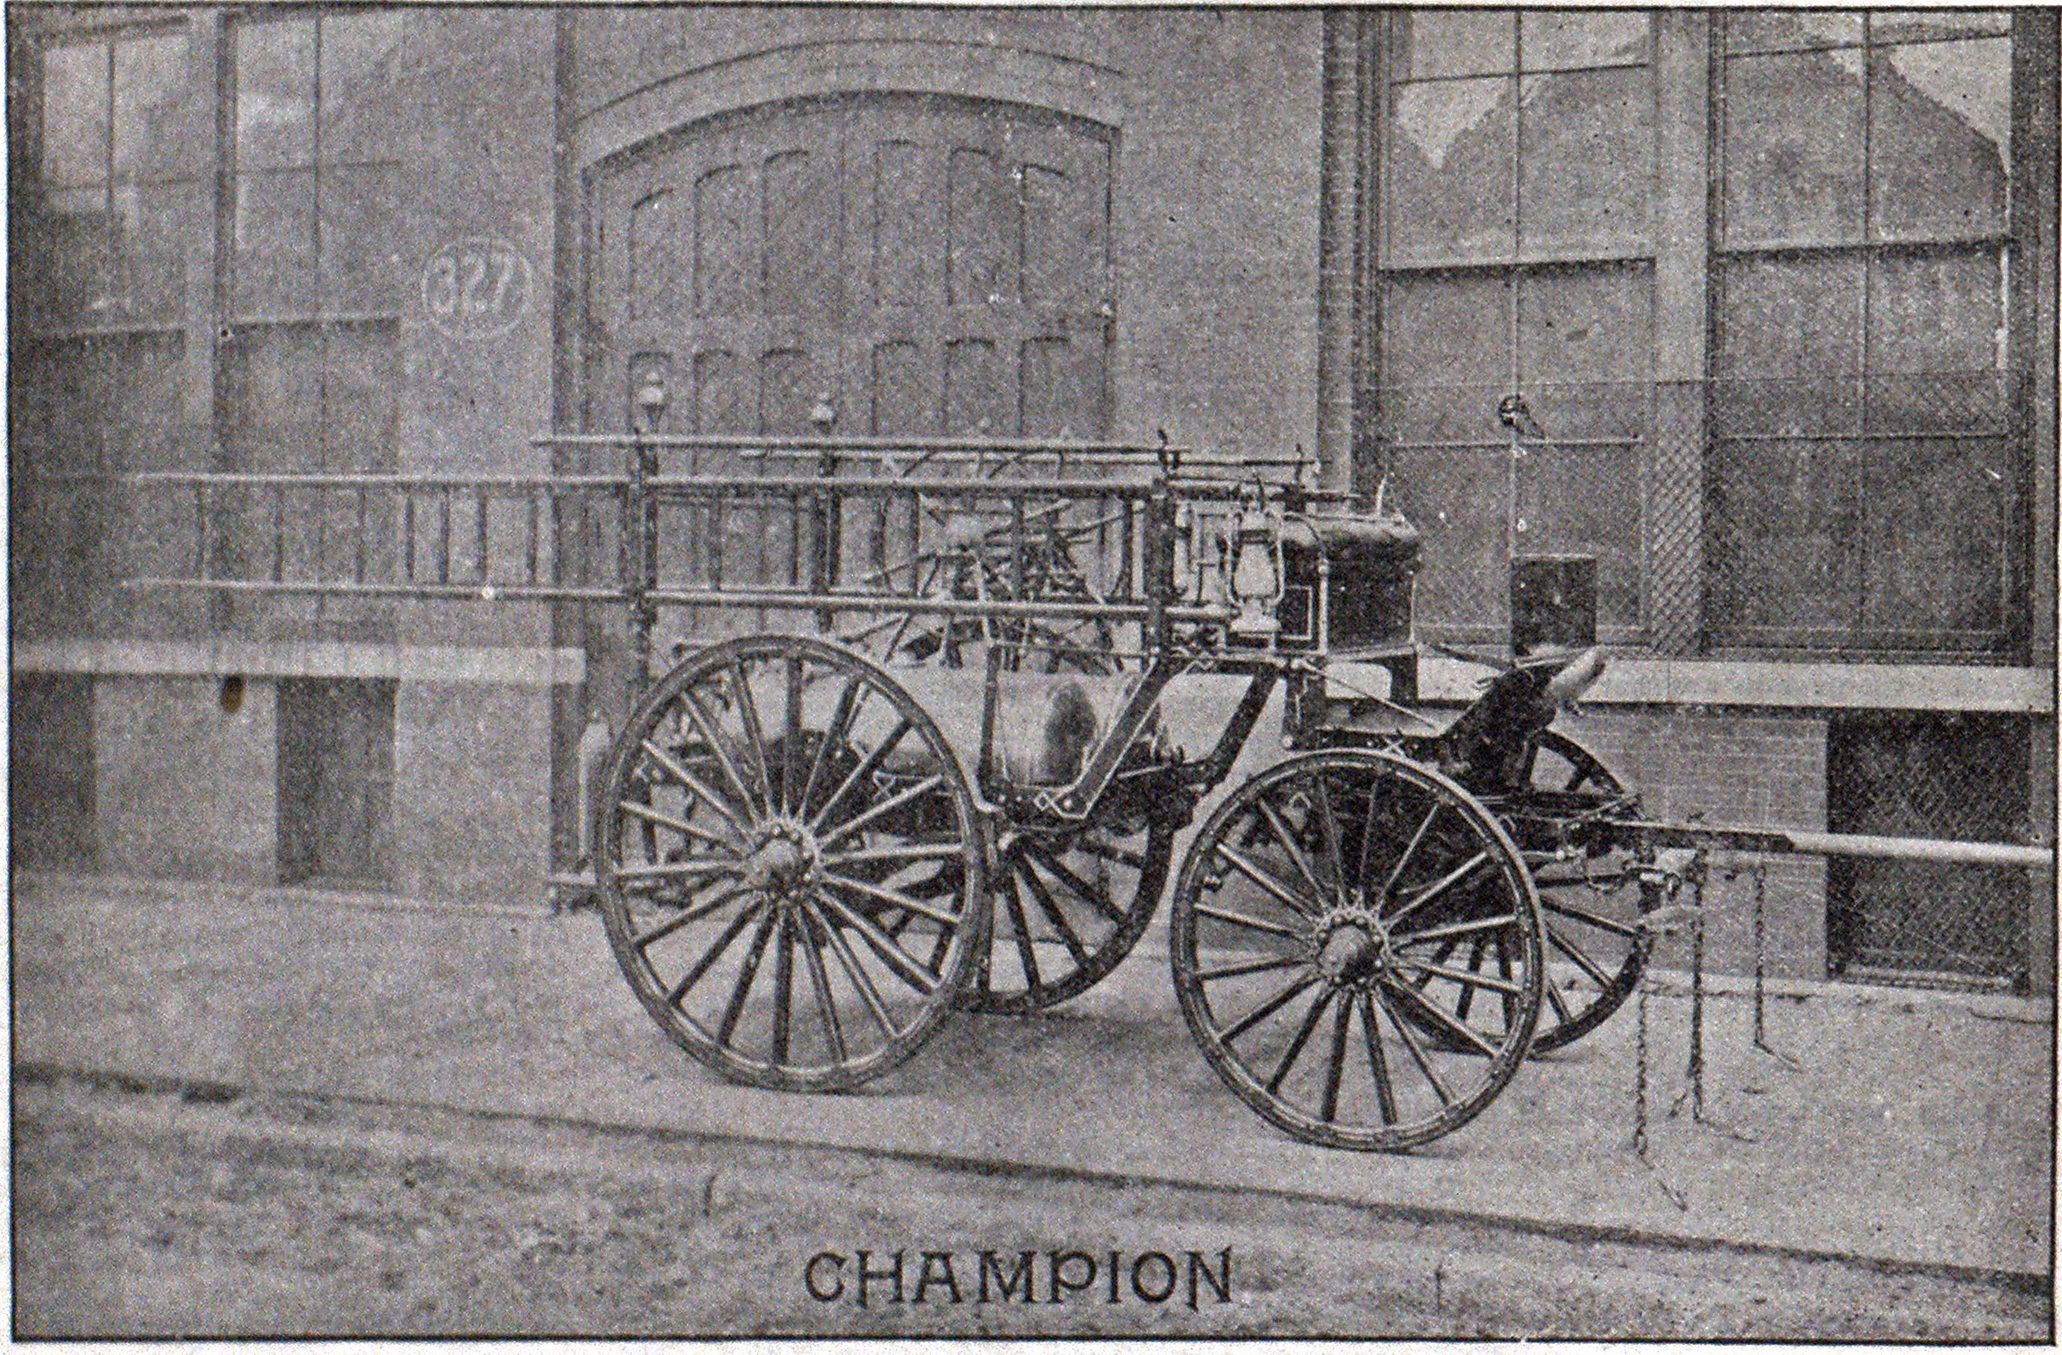 MODERN AMERICAN FIRE APPARATUS, CHEMICAL ENGINE MADE BY FIRE EXTINGUISHER M'F'G CO., CHICAGO.